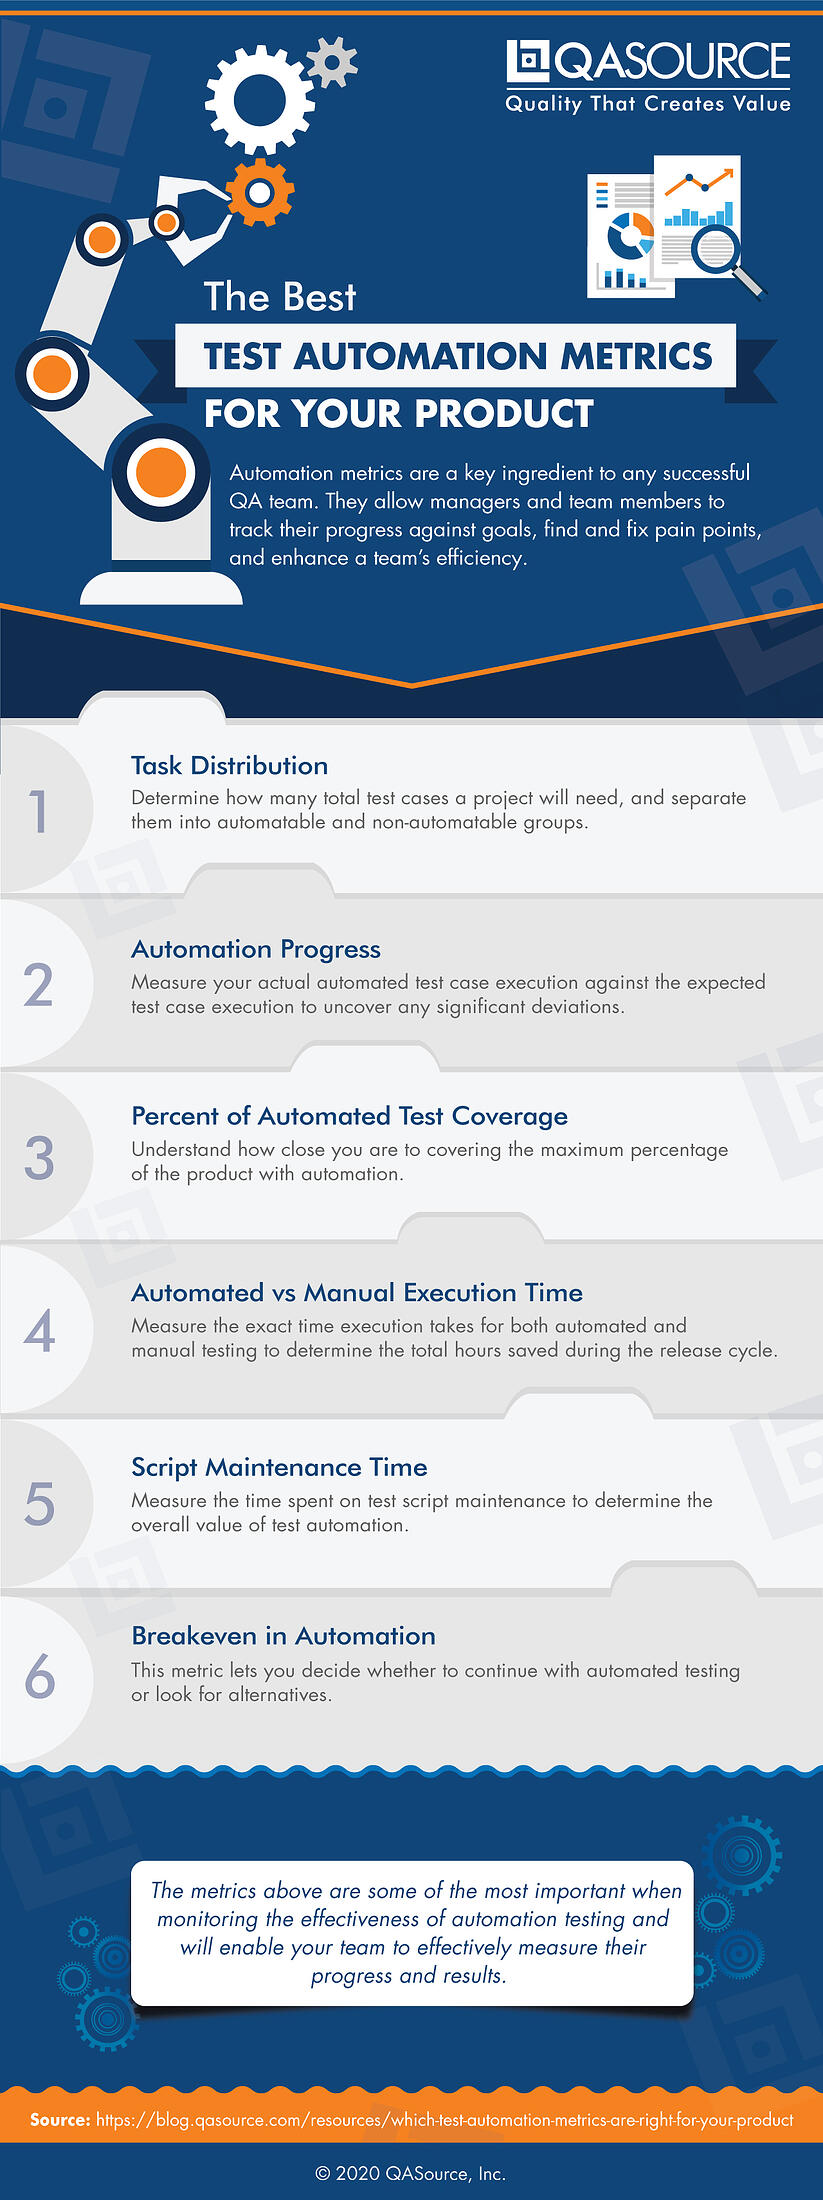 The Best Test Automation Metrics For Your Product (Infographic)